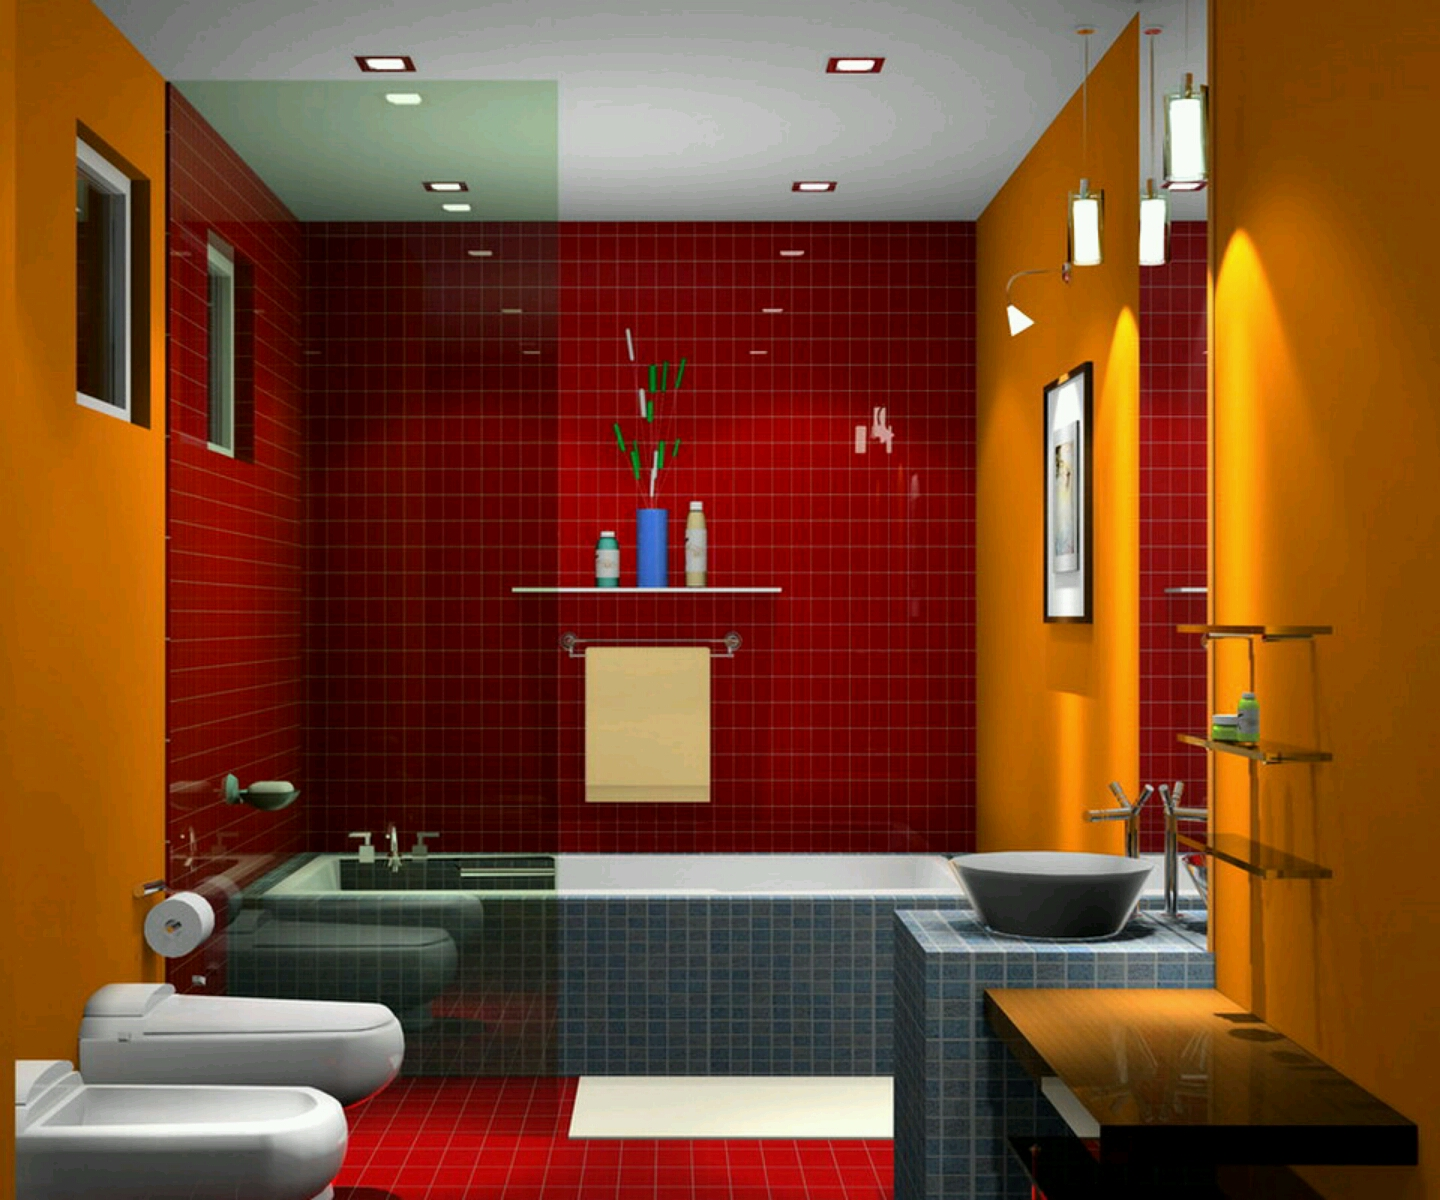 New home designs latest luxury bathrooms designs ideas for Latest in bathroom design